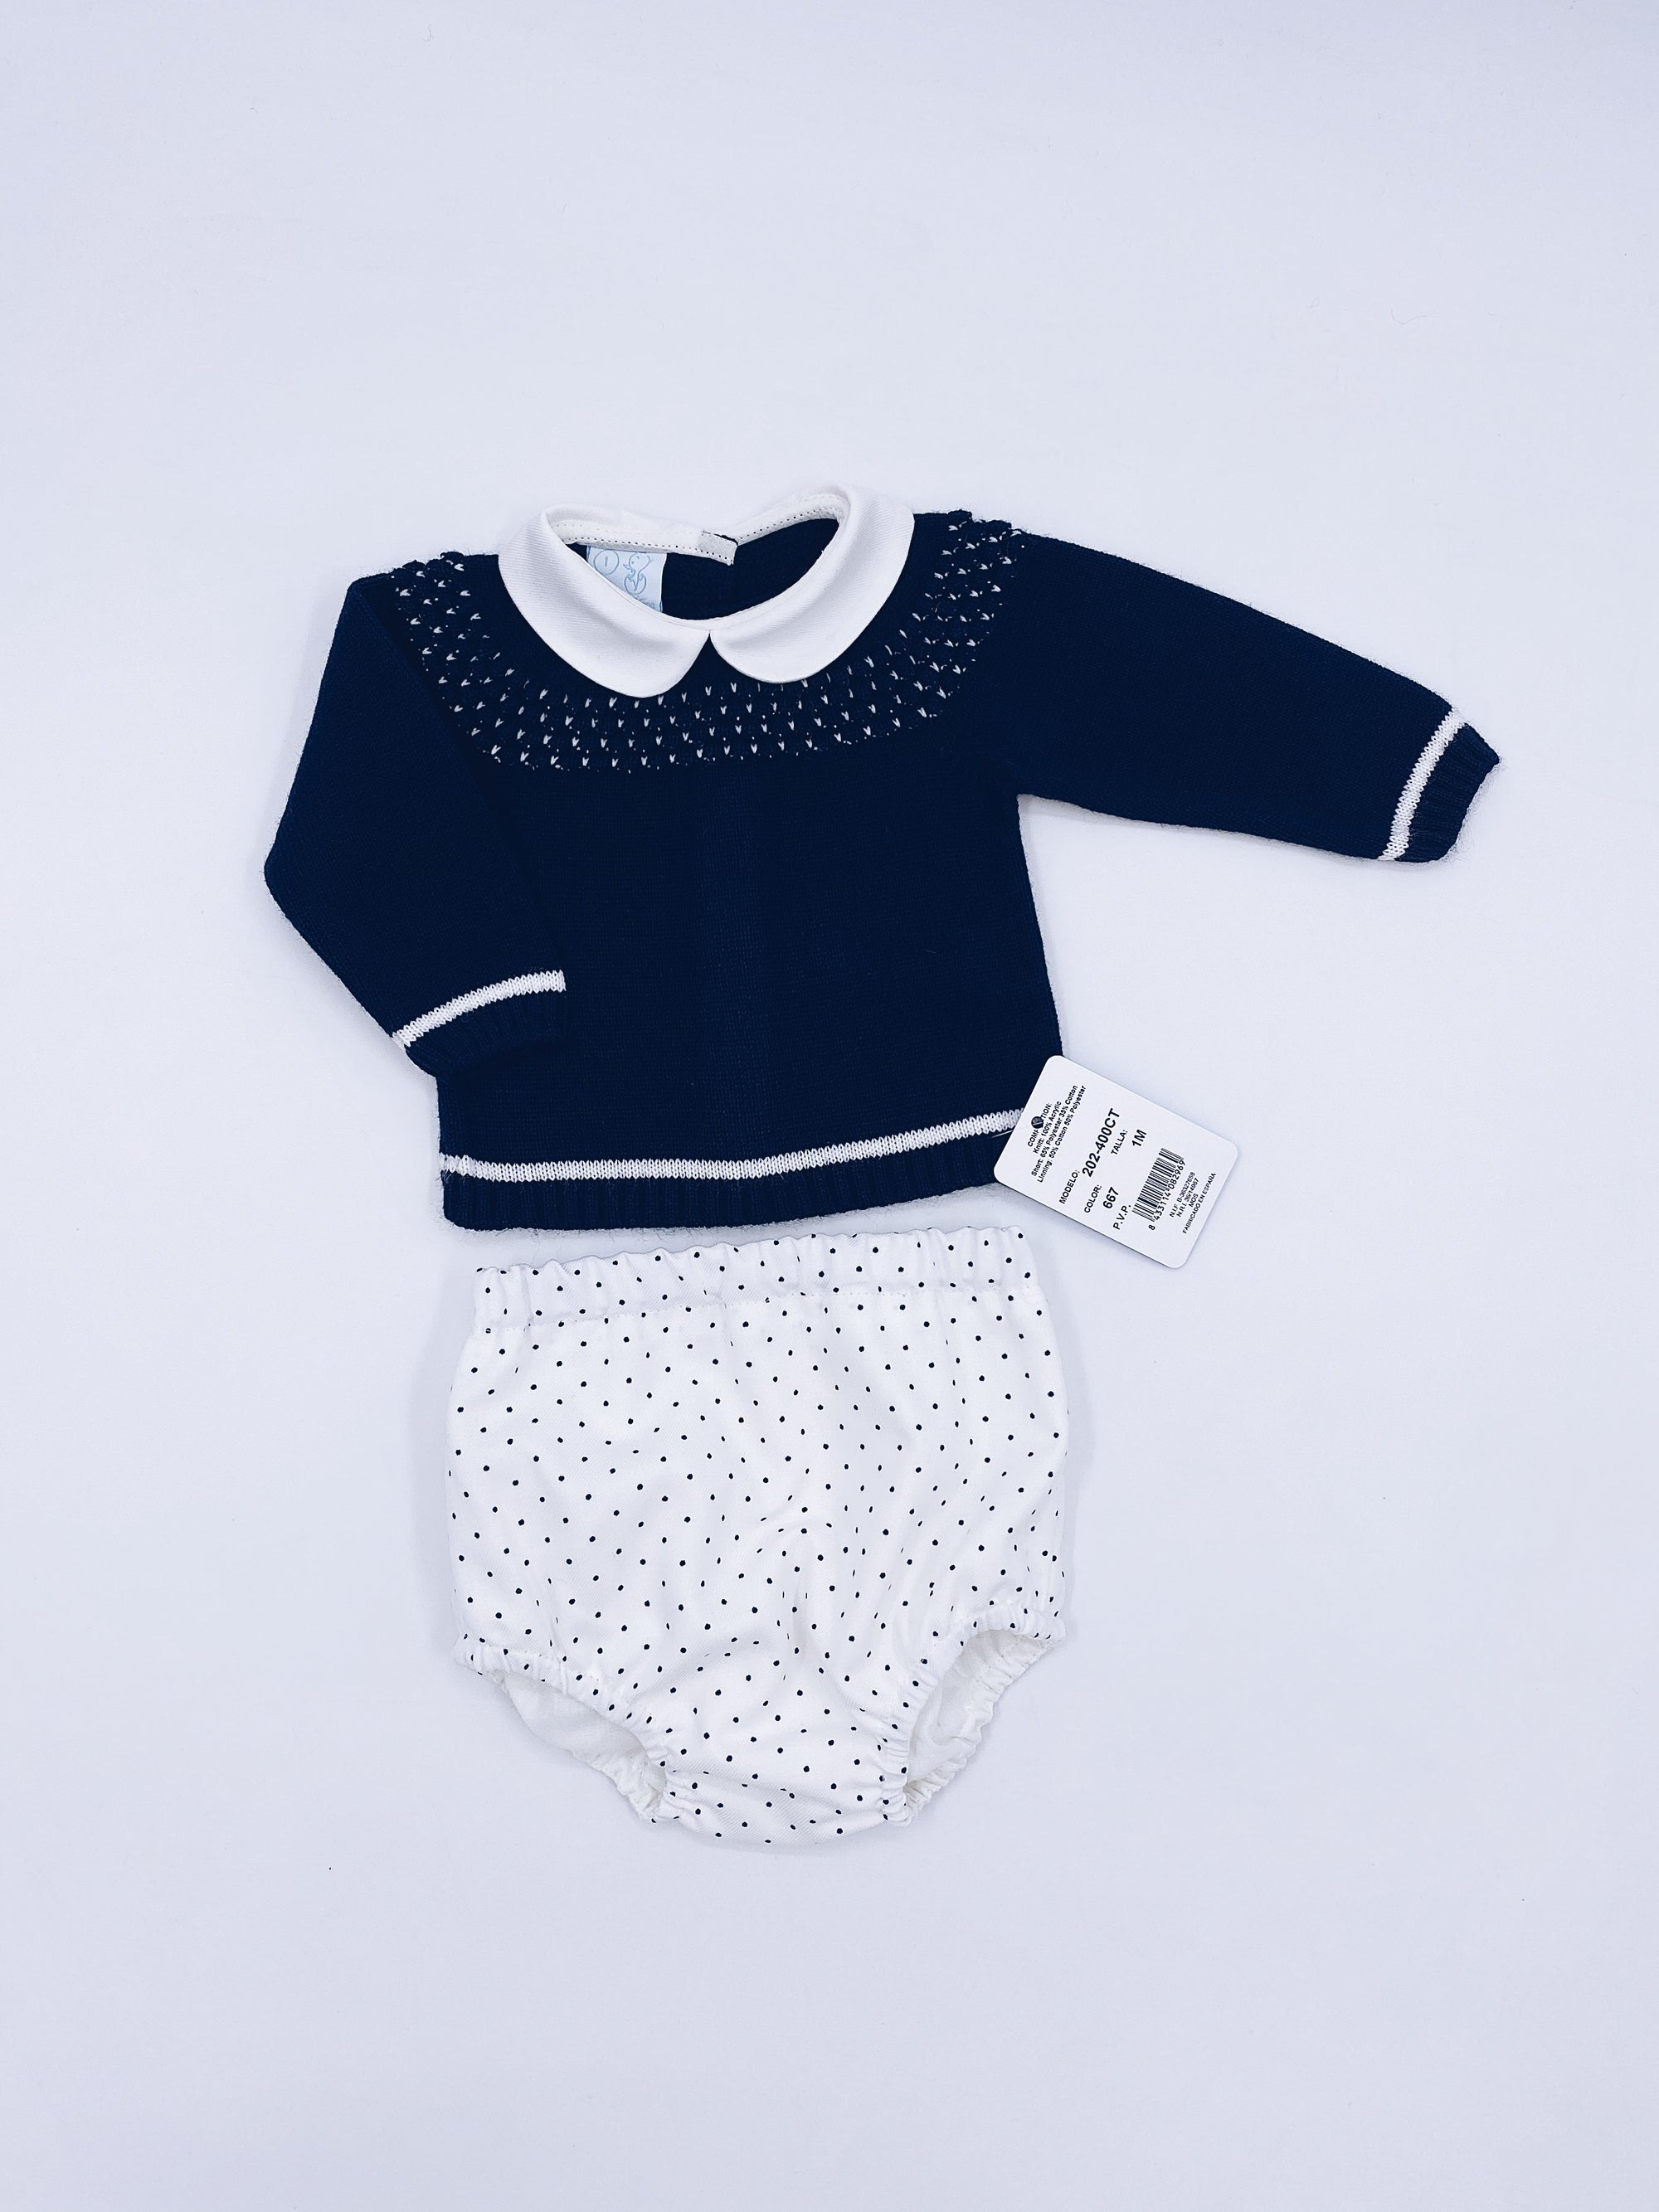 Beautiful Navy knitted jumper and shorts set